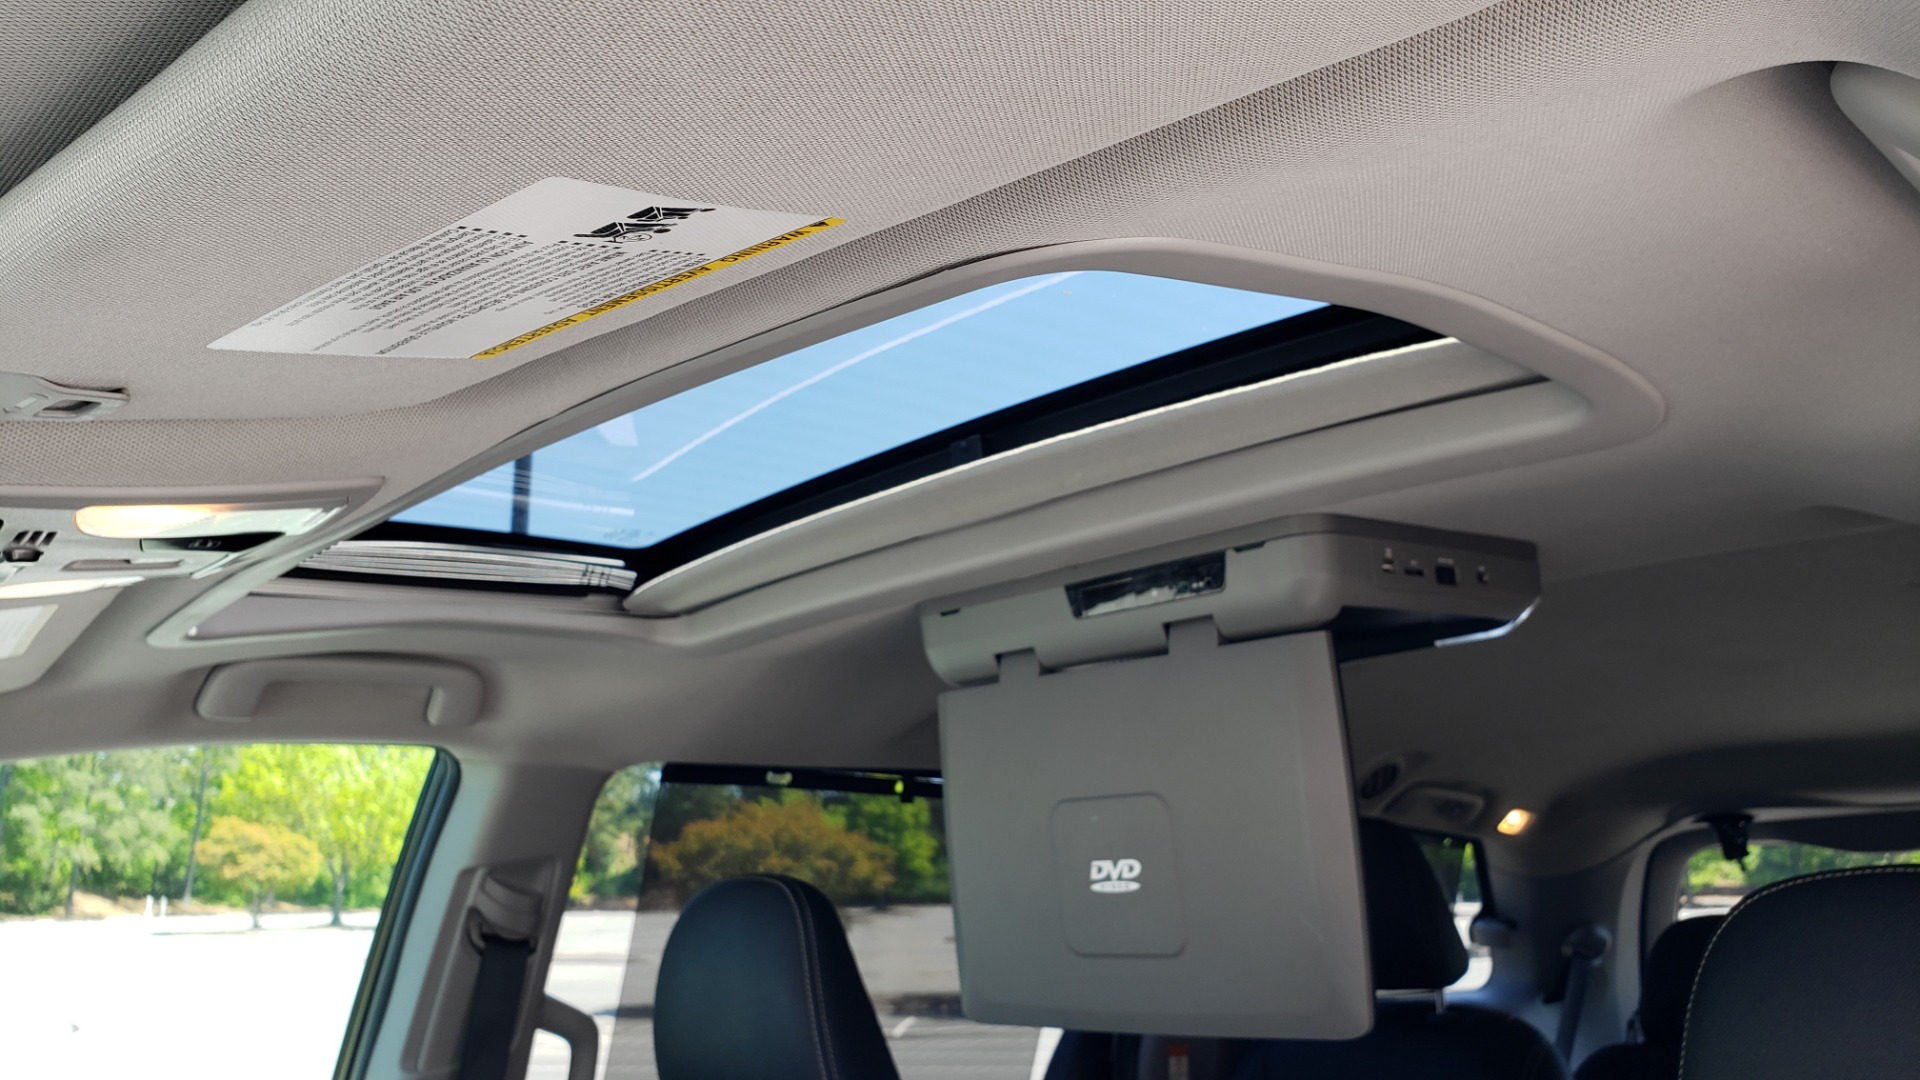 Used 2015 Toyota SIENNA SE 3.5L / FWD / 3-ROWS / 8-PASS / SUNROOF / DVD / REARVIEW for sale $21,995 at Formula Imports in Charlotte NC 28227 59